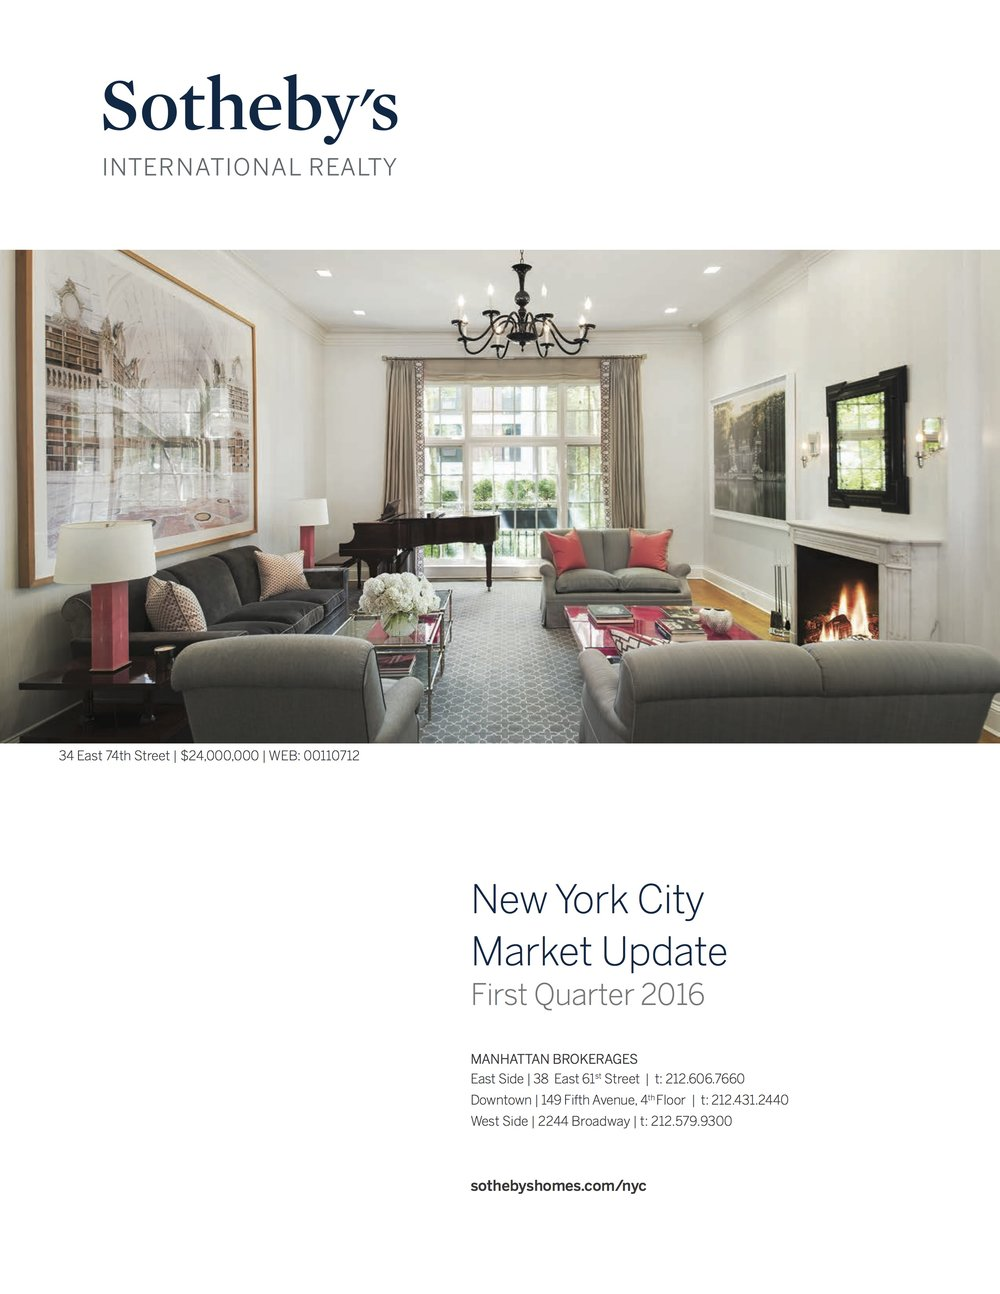 SothebysInternationalRealty_Manhattan_MarketReport_2016_Q1_1.jpg